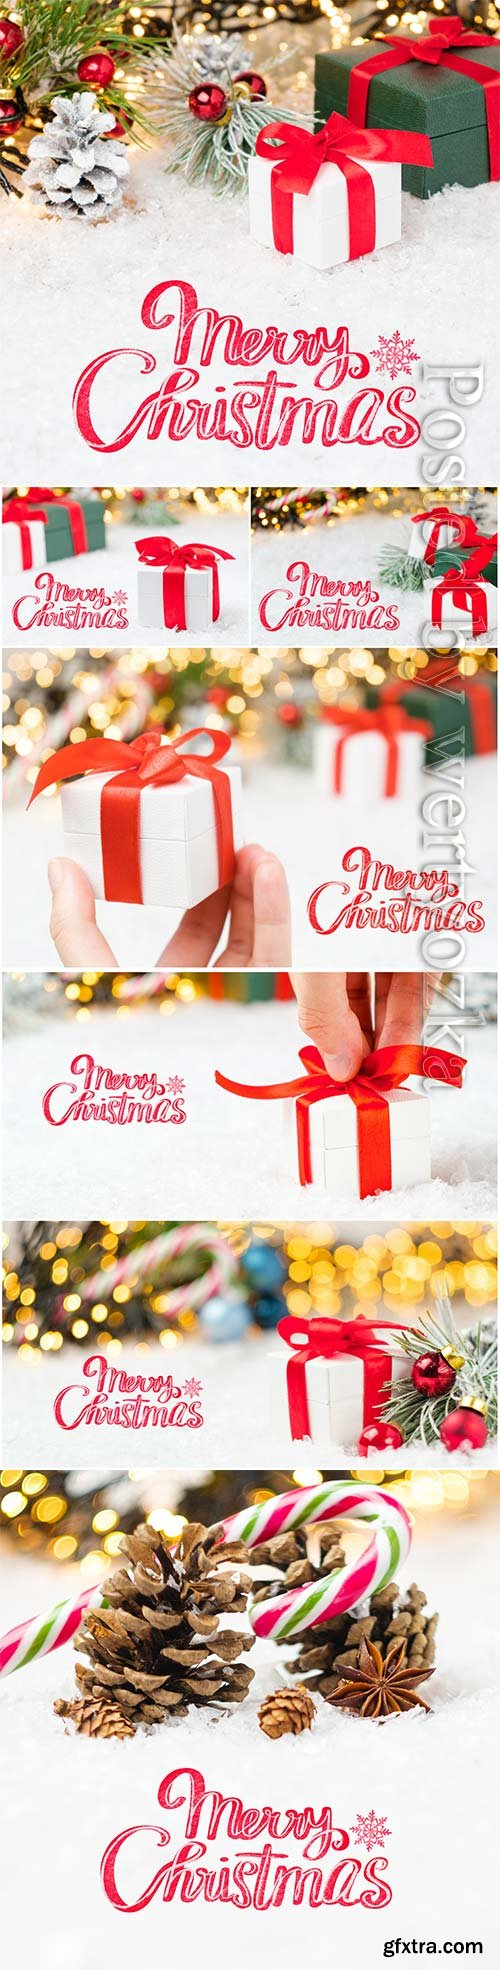 Merry christmas lettering greeting card with gift boxes